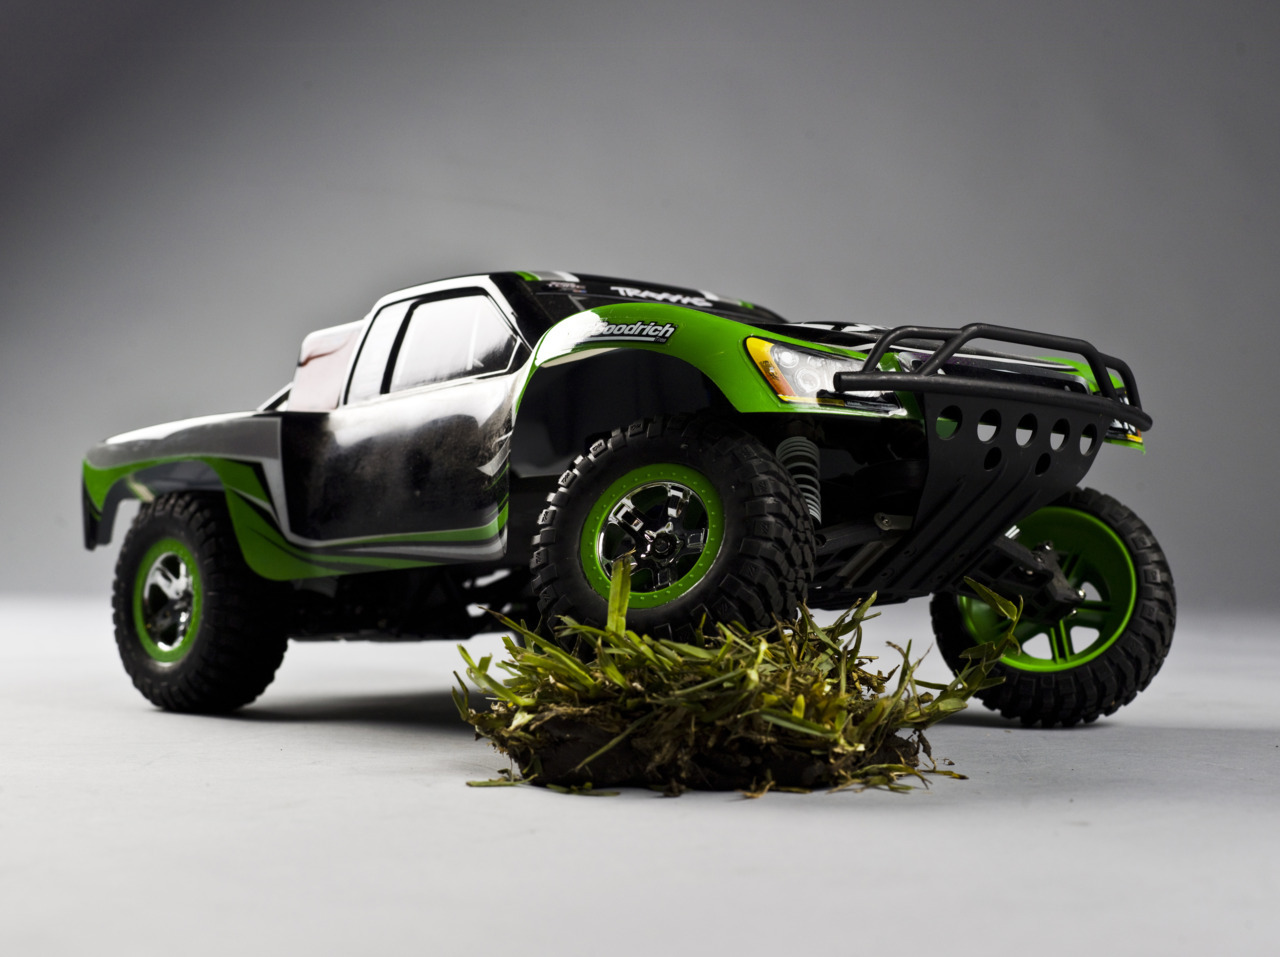 Tearin' up the studio Traxxas style.